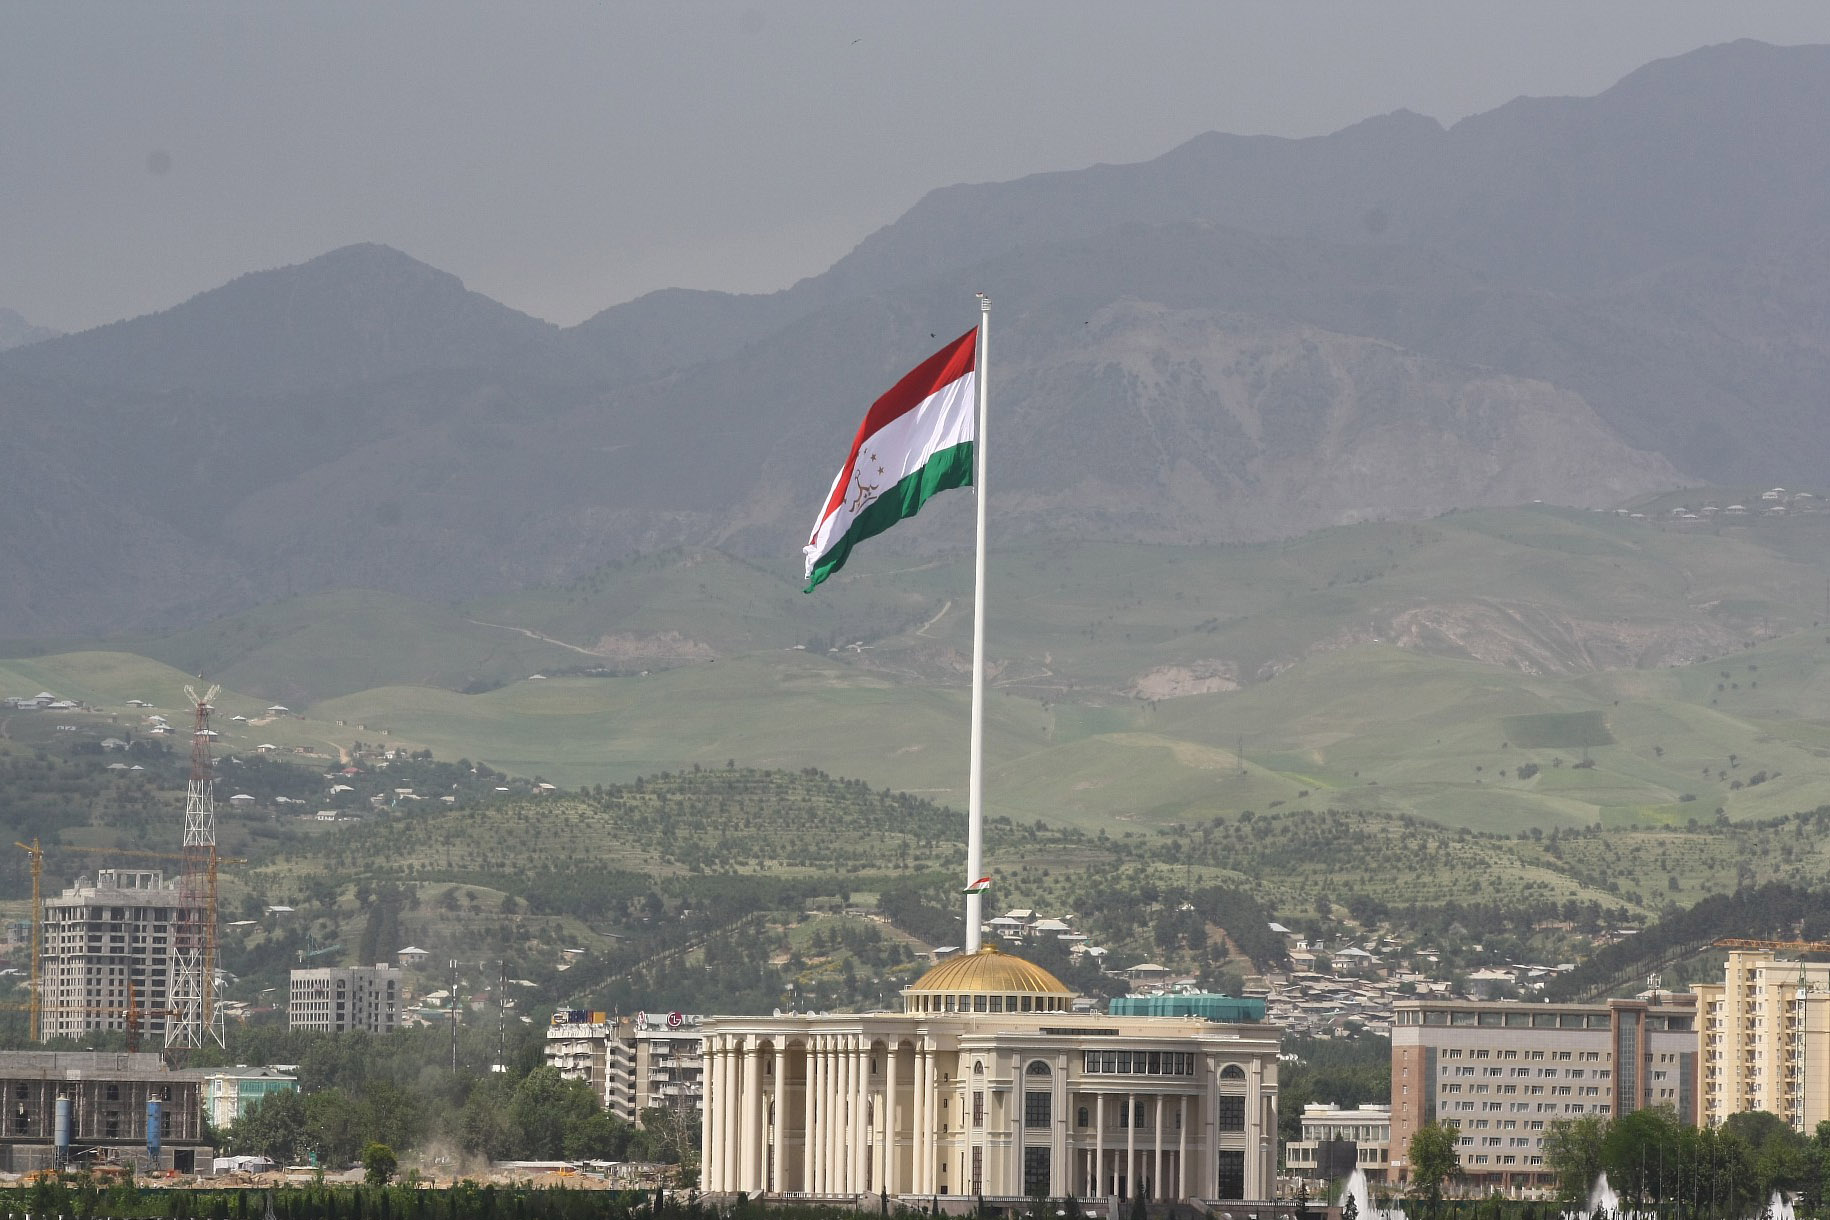 The second tallest flagpole in the world. Dushanbe. Photographer: Nozim Qalandarov